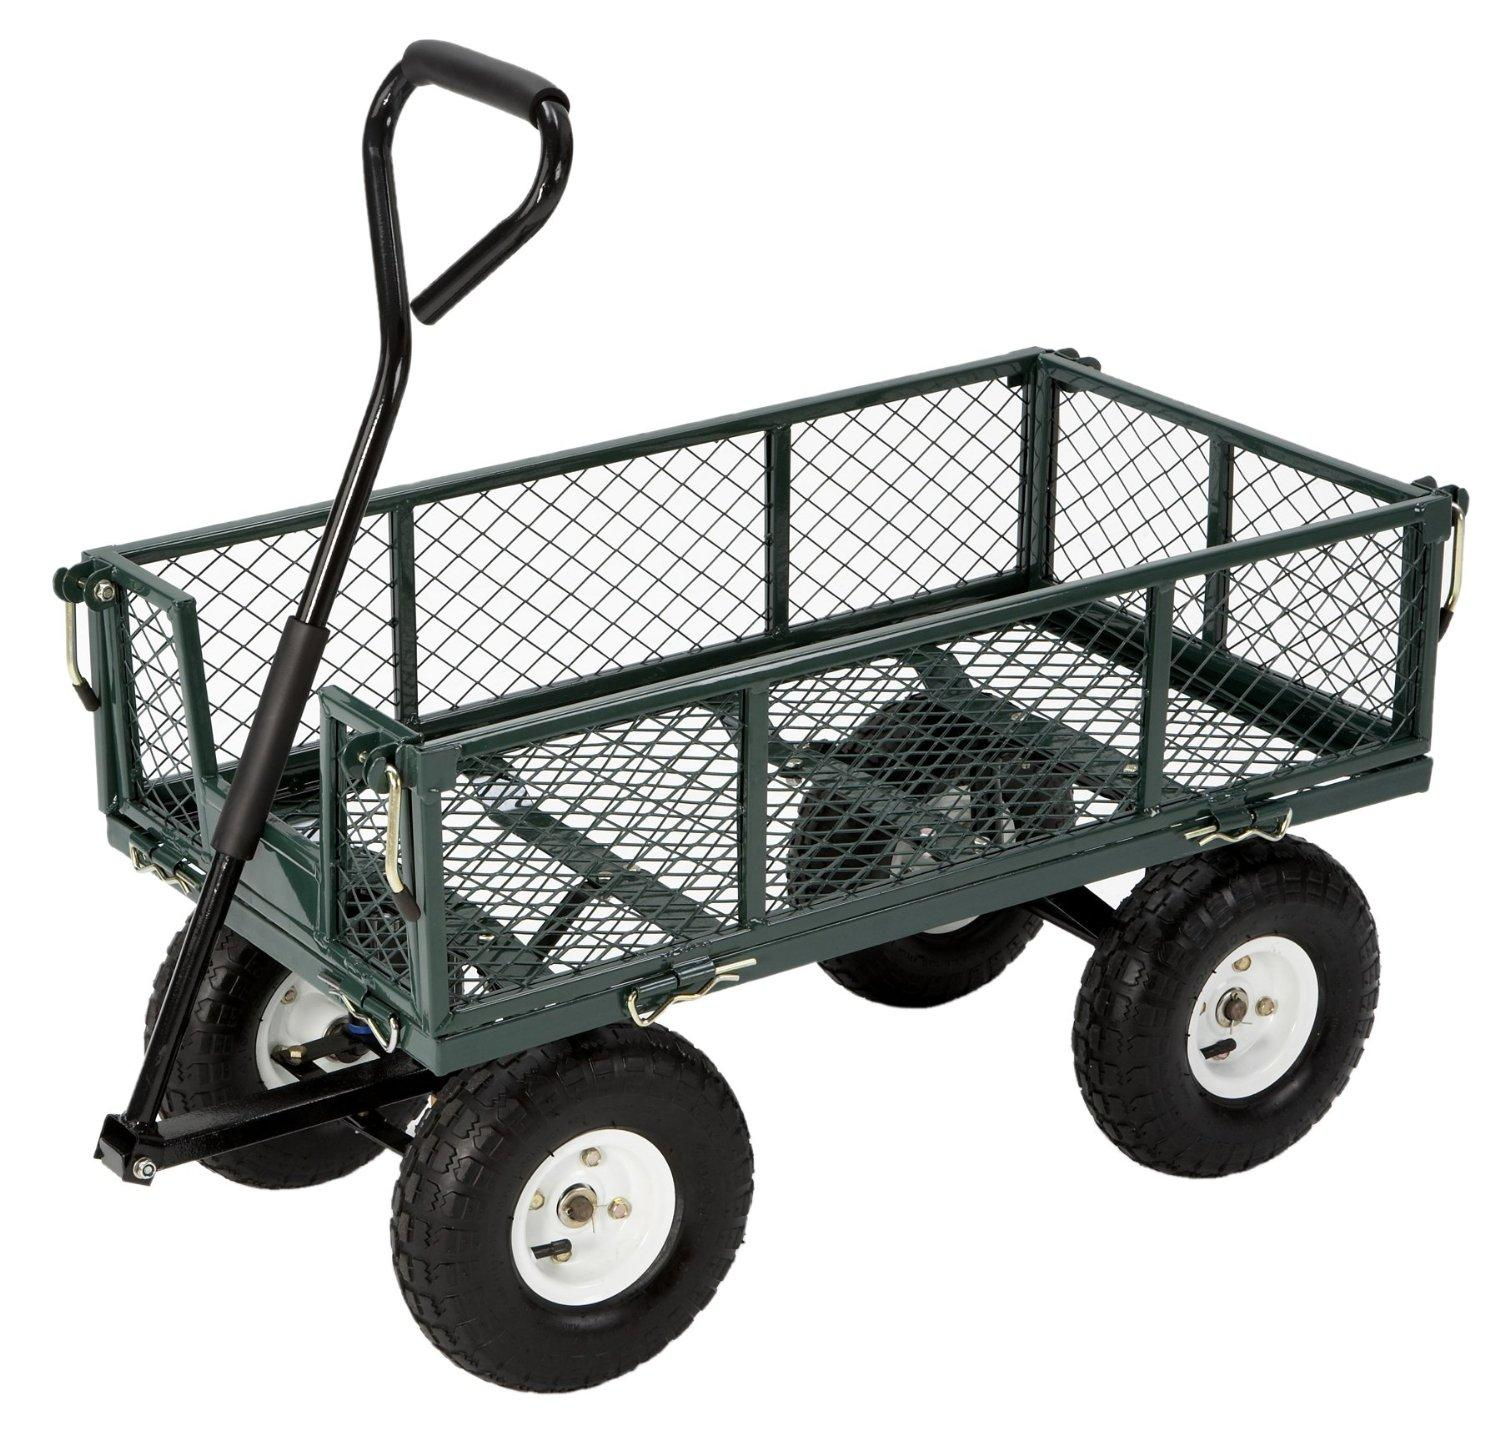 Amazoncom Farm Ranch FR110 2 Steel Utility Garden Cart with